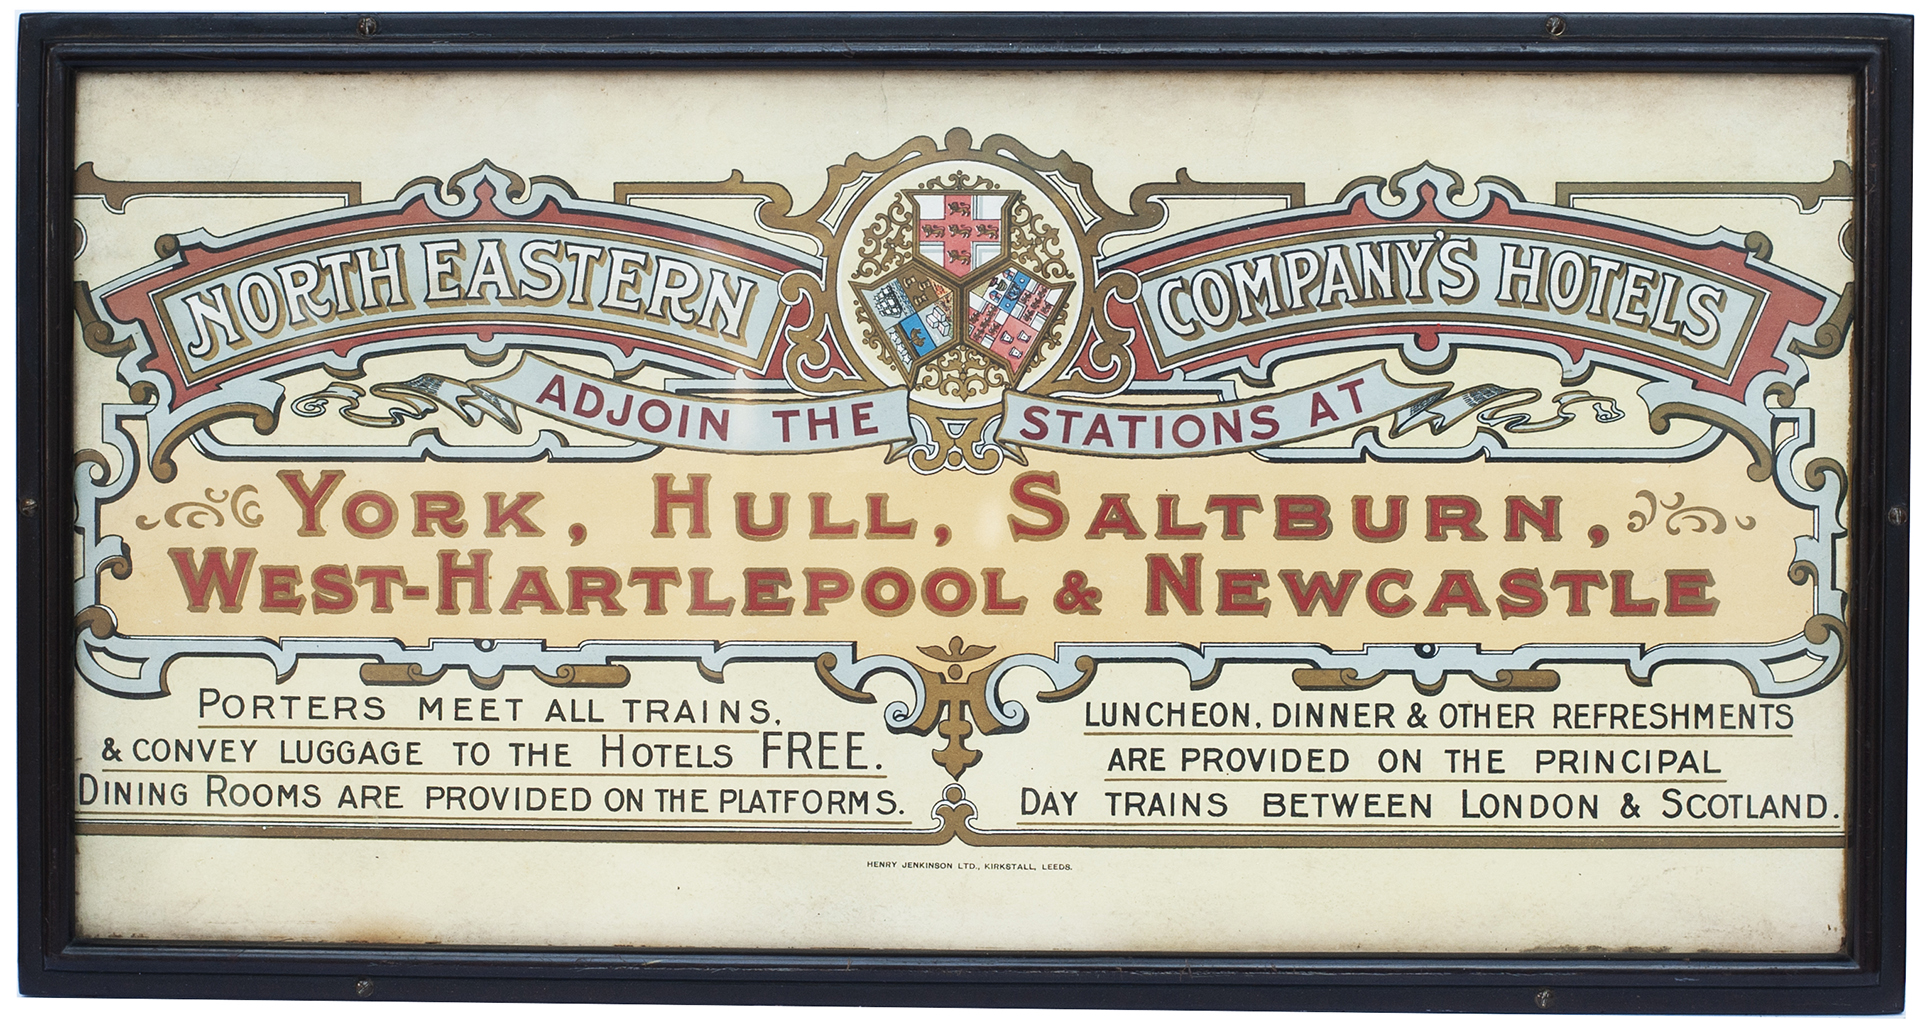 Carriage Print NORTH EASTERN COMPANY'S HOTELS